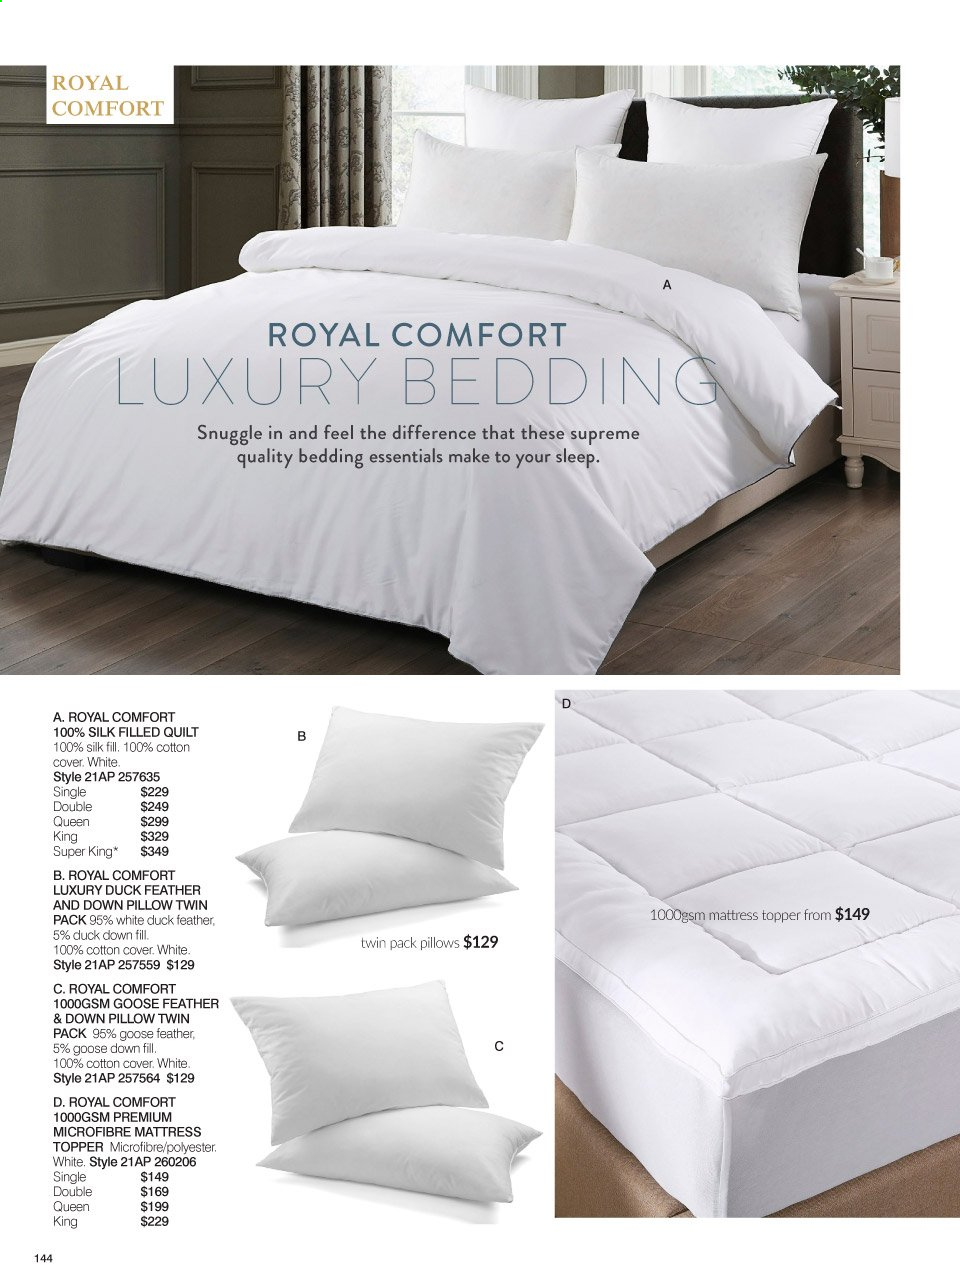 Ezibuy mailer - 20.01.2021 - 14.02.2021 - Sales products - bedding collection, pillow, quilt, mattress protector, essentials. Page 144.